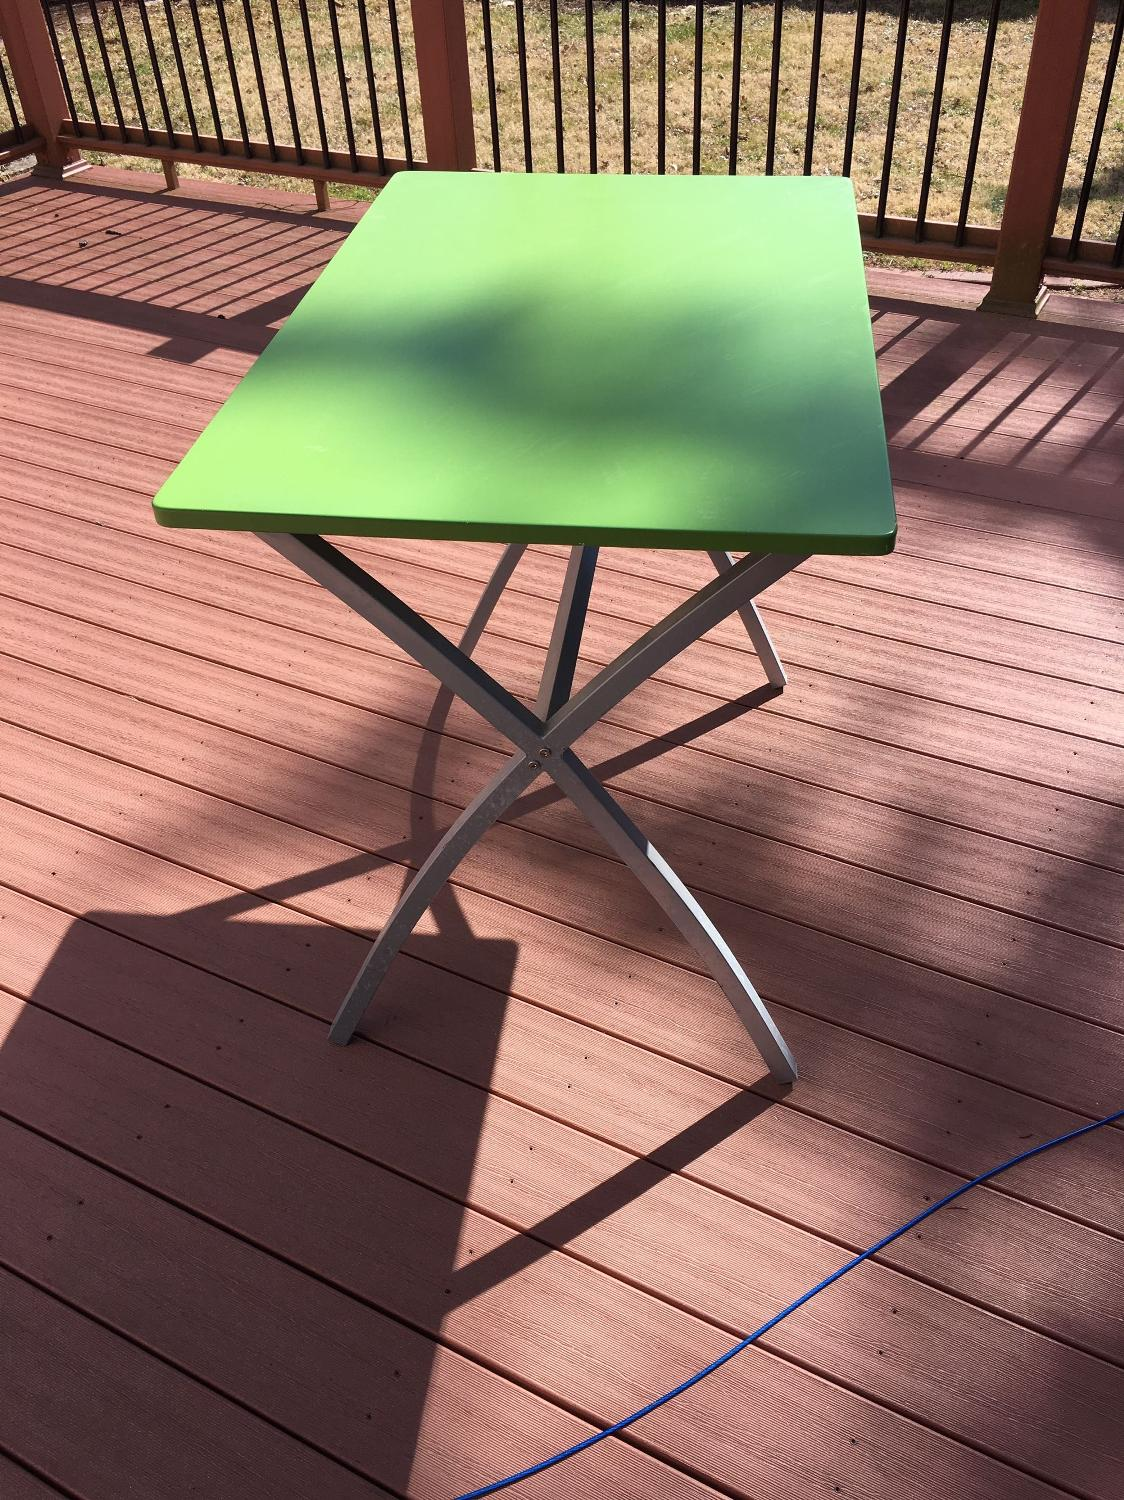 Best Ikea Like Bright Green Table And Stand For Sale In Peoria Illinois For 2017